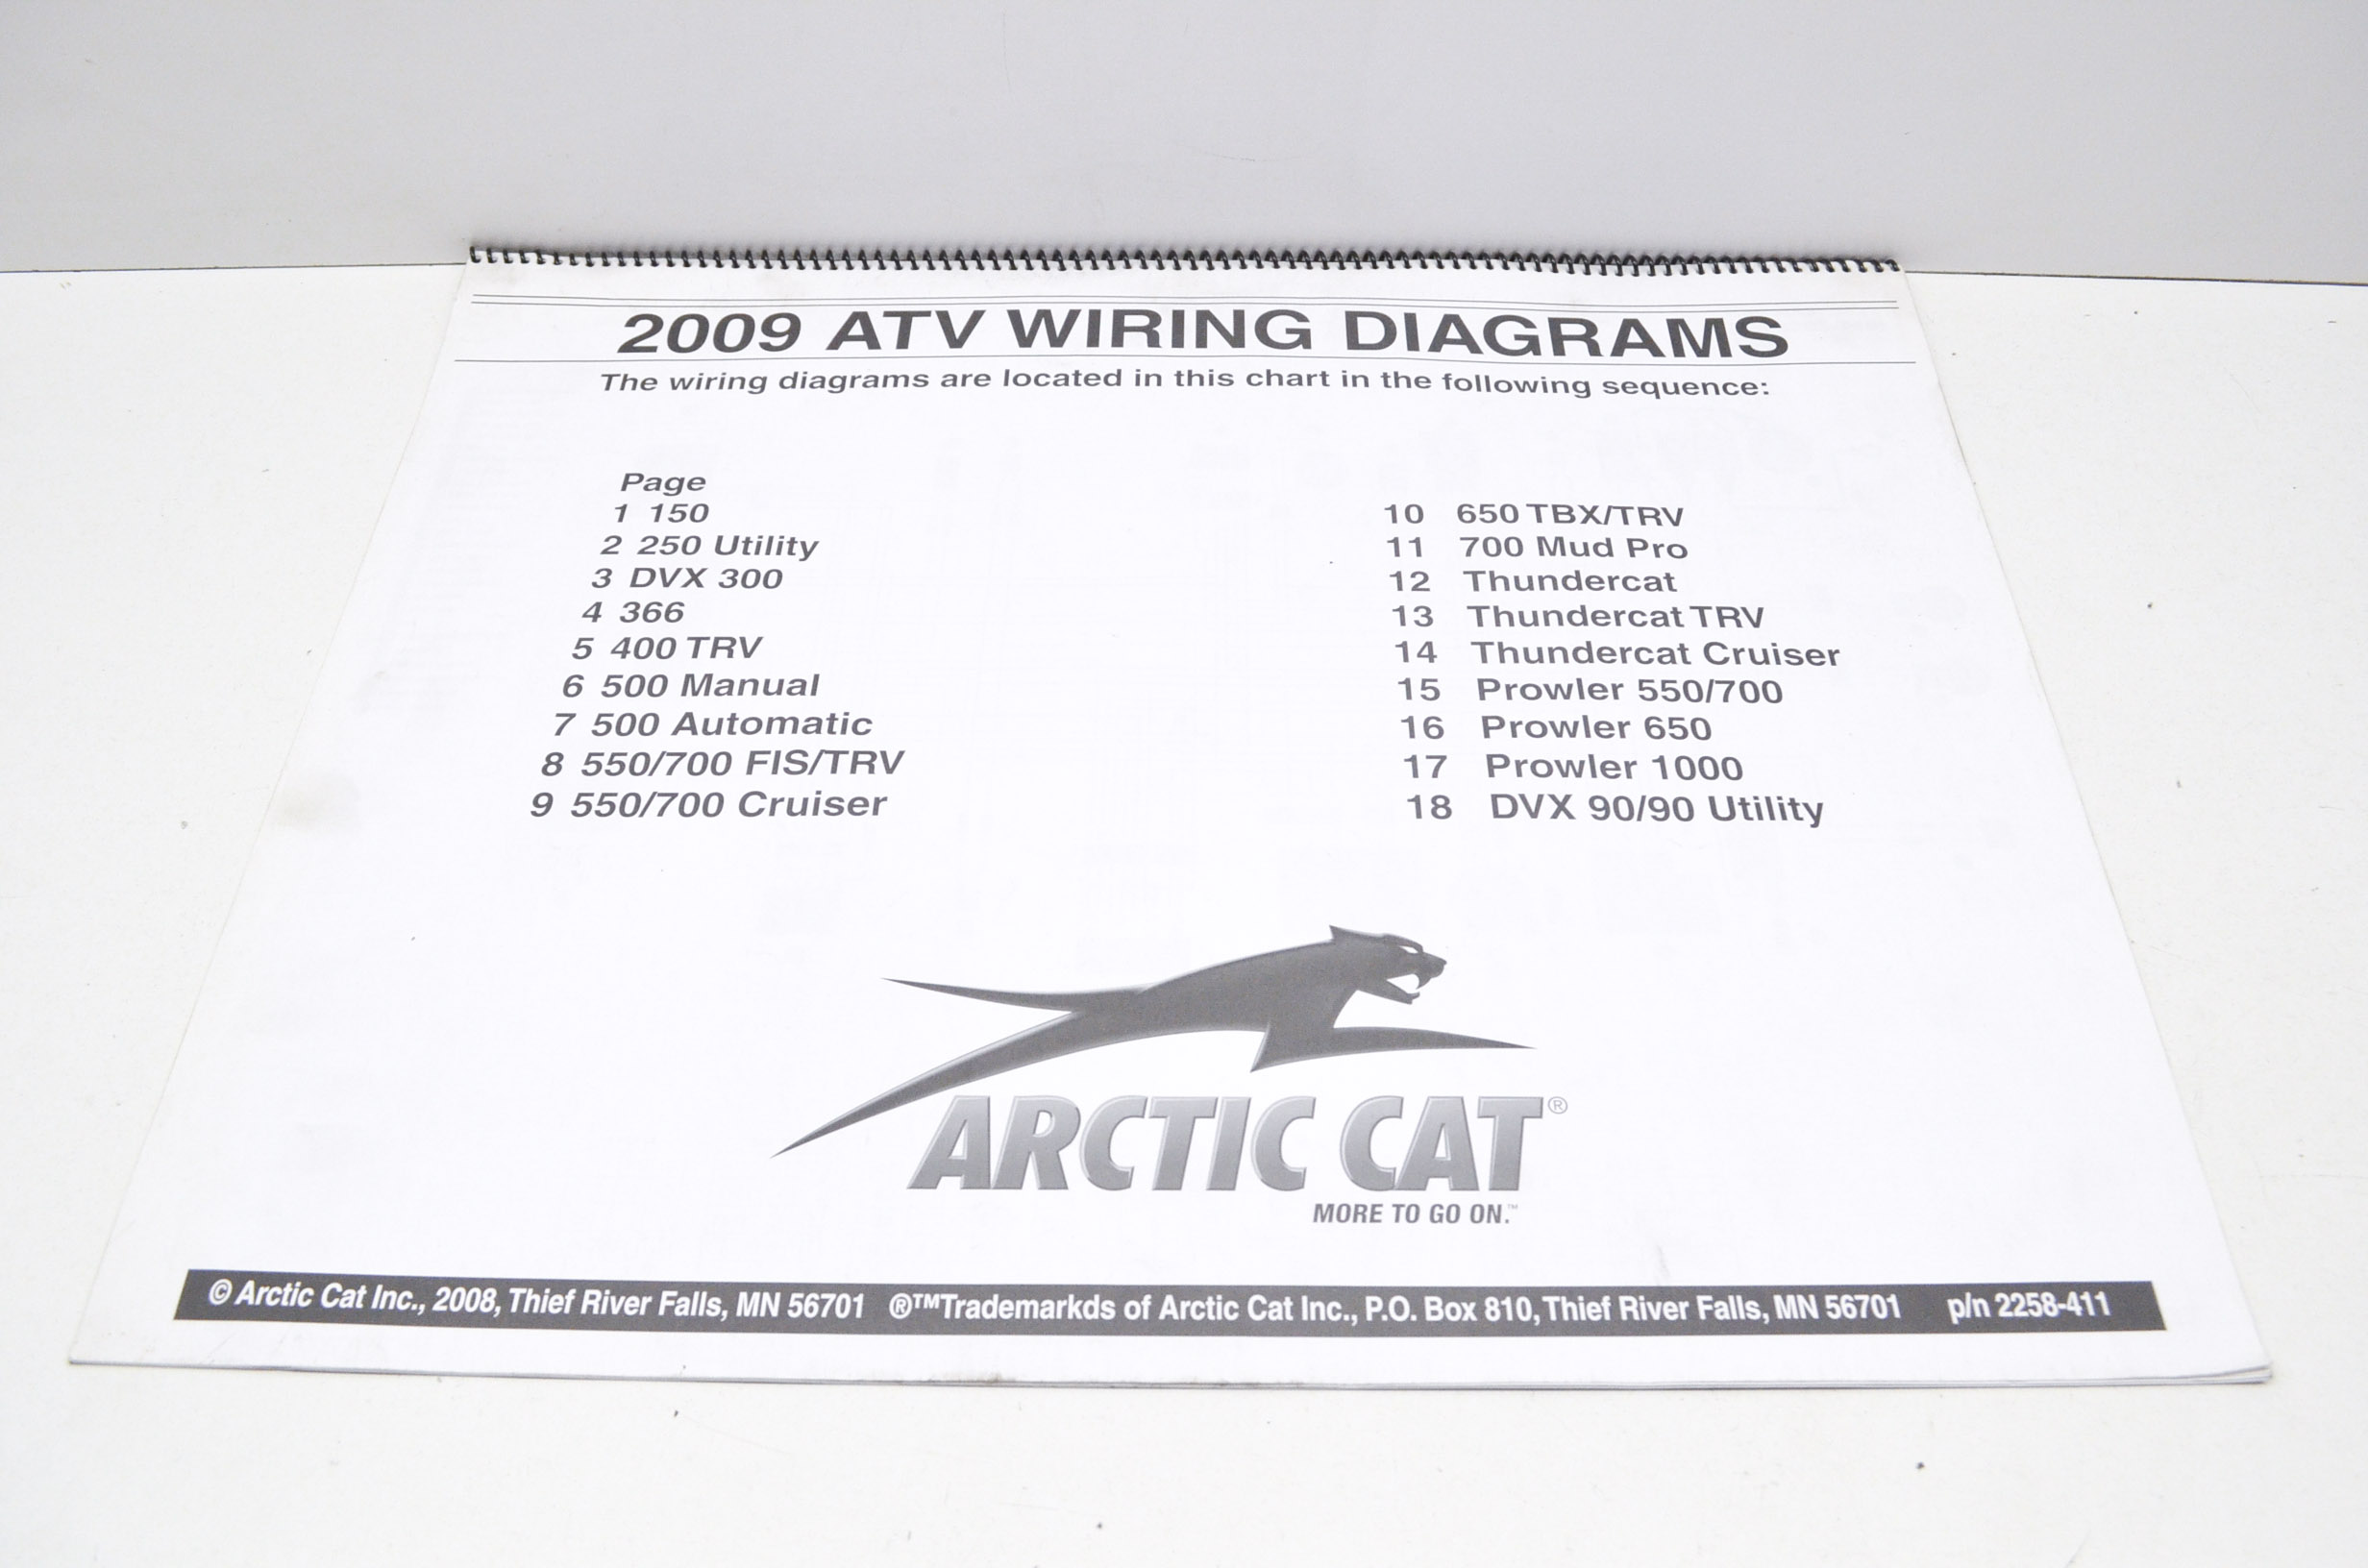 small resolution of arctic cat 2258 411 2009 atv wiring diagrams qty 1 walmart com rh walmart com arctic cat wiring schematic arctic cat atv wiring schematics